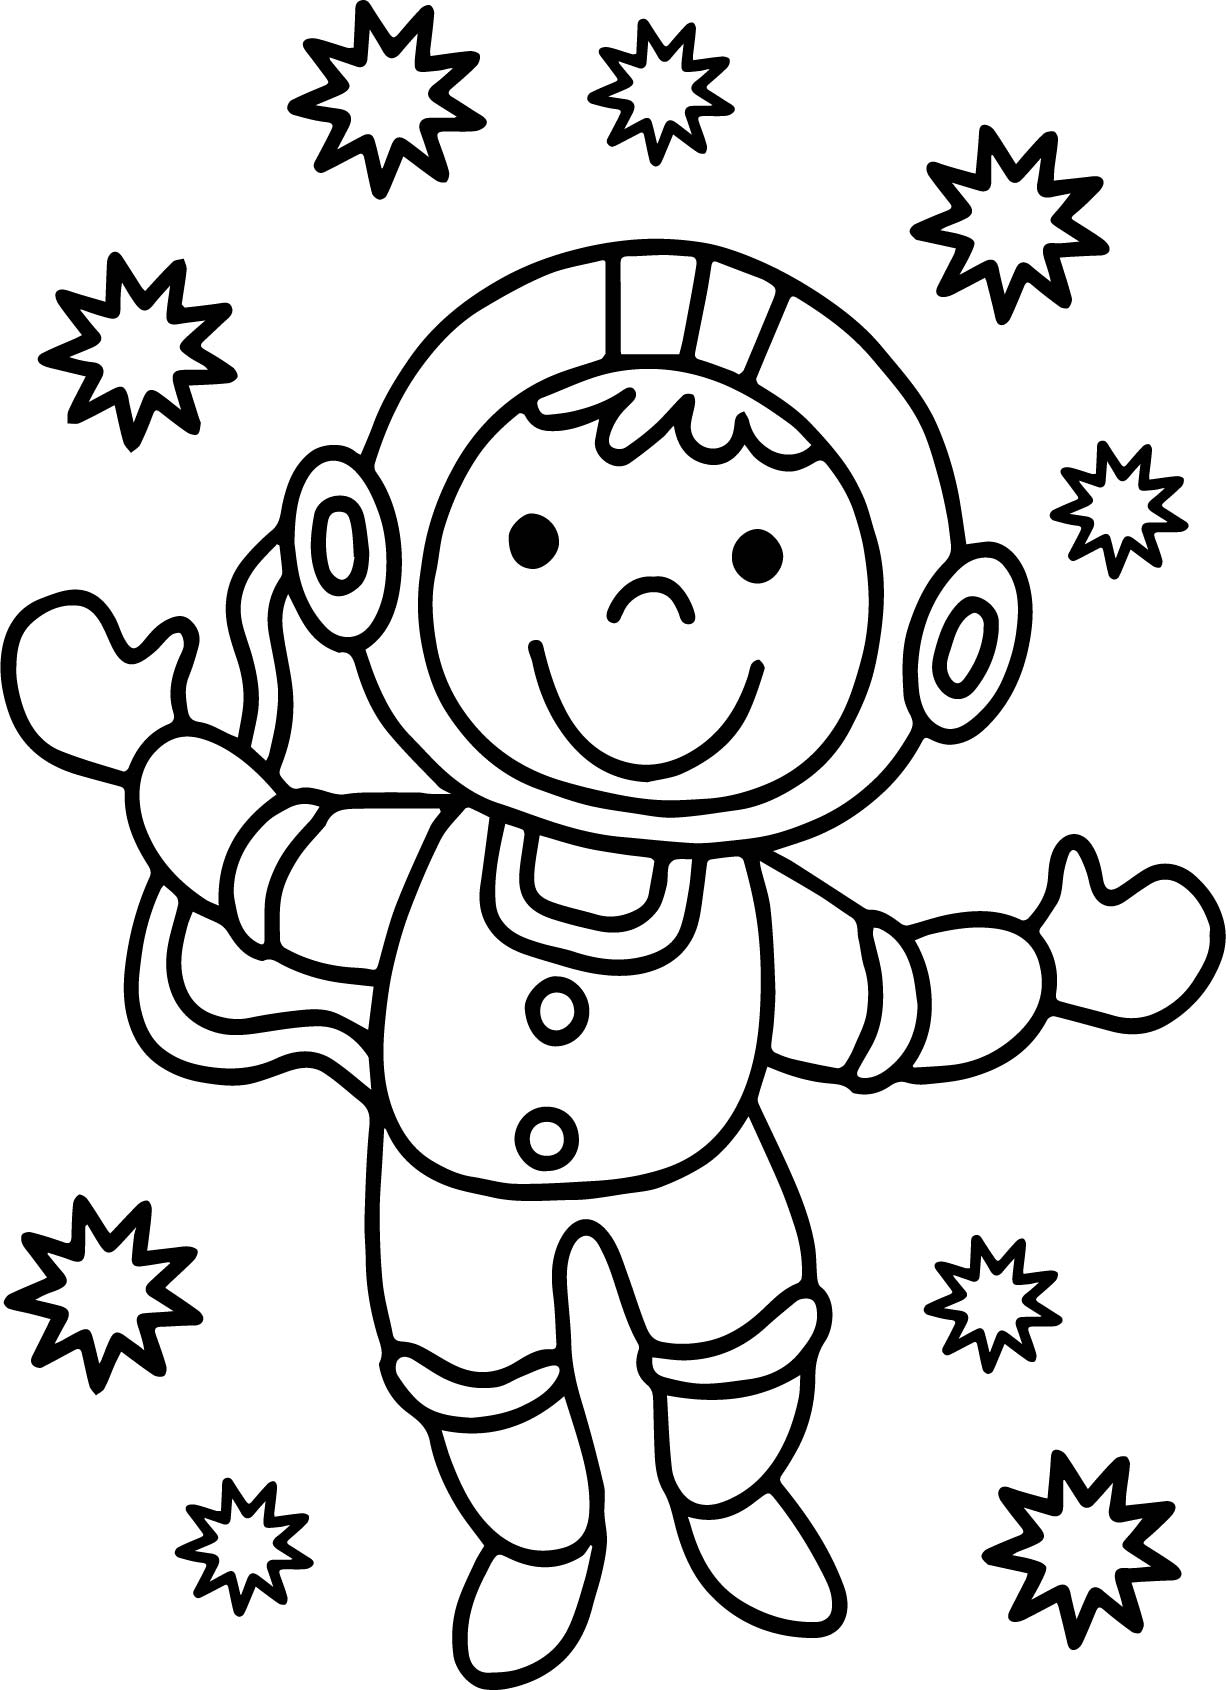 Astronaut Good Monkey Coloring Page Wecoloringpage